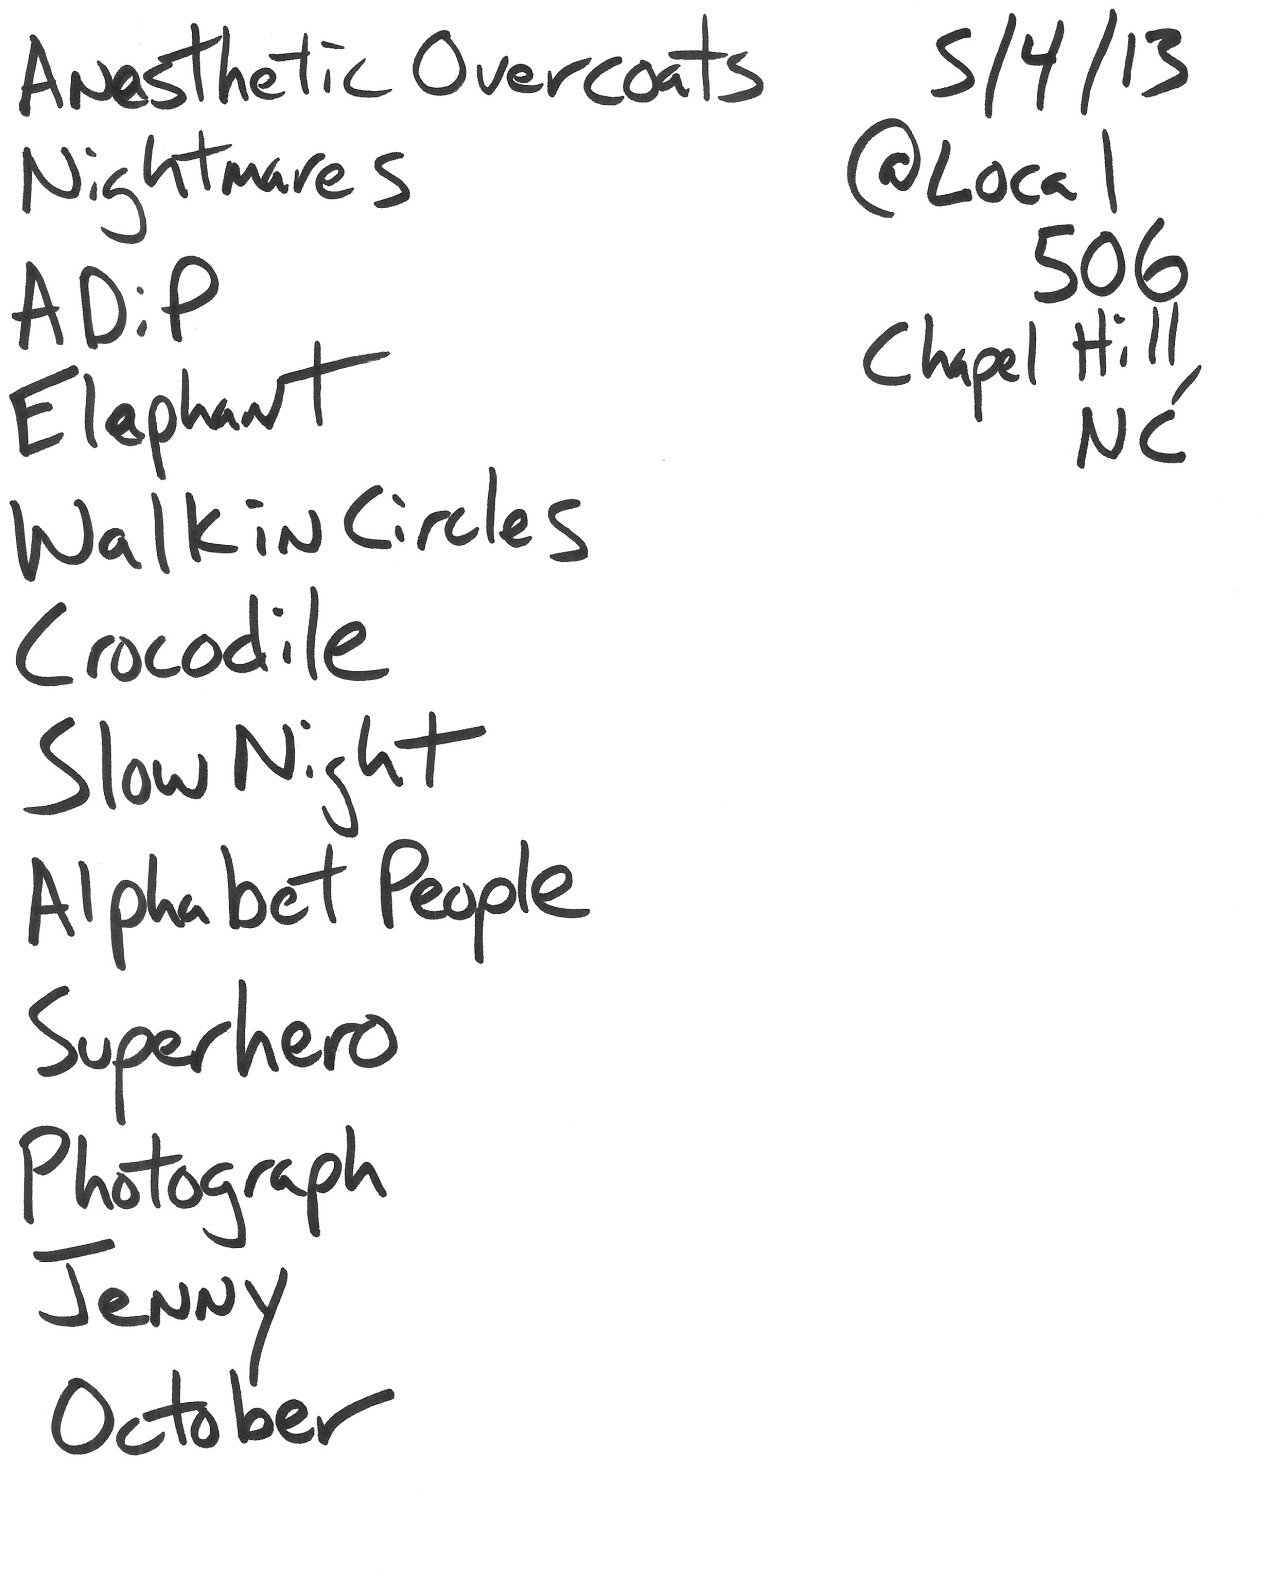 Set List - Mike Garrigan @ Local 506, May 4, 2013